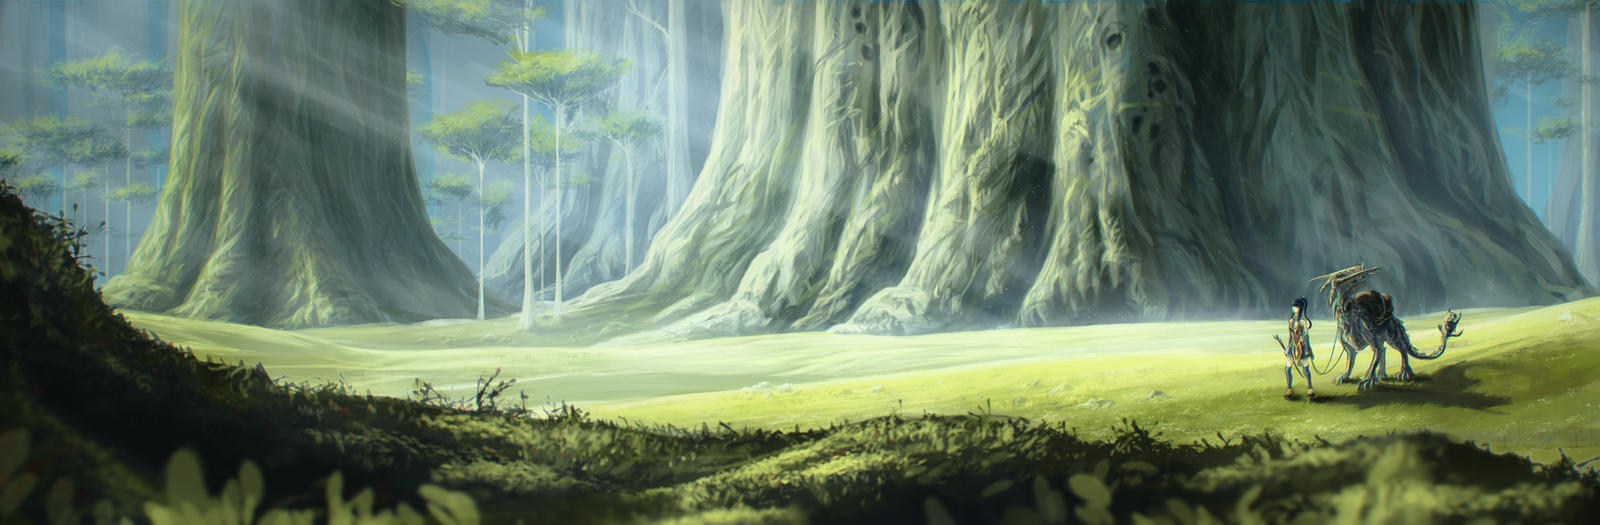 Anime Scenery Forest In the forest of giants by